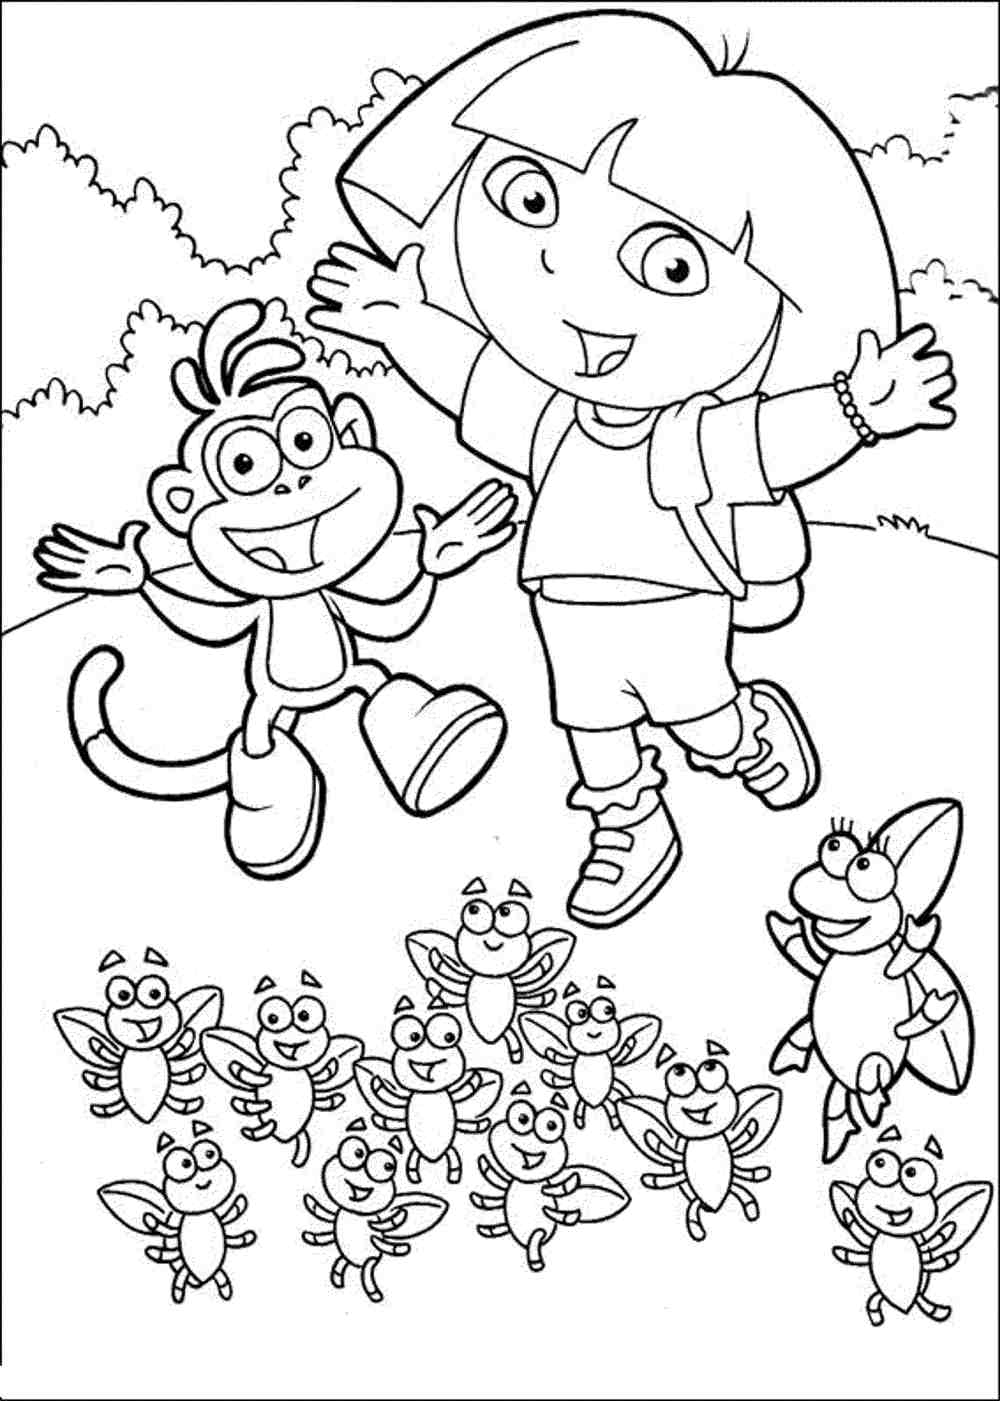 dora pictures to color and print free printable dora coloring pages for kids cool2bkids and print dora pictures to color